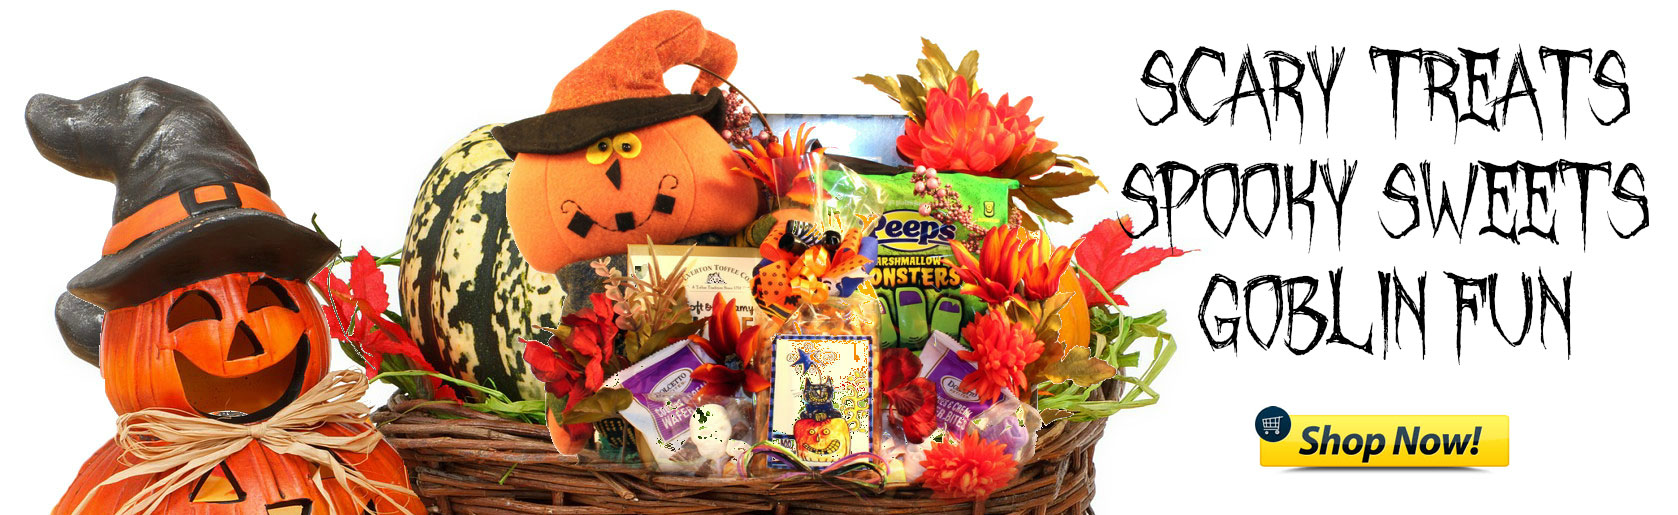 Gift basket service business plan